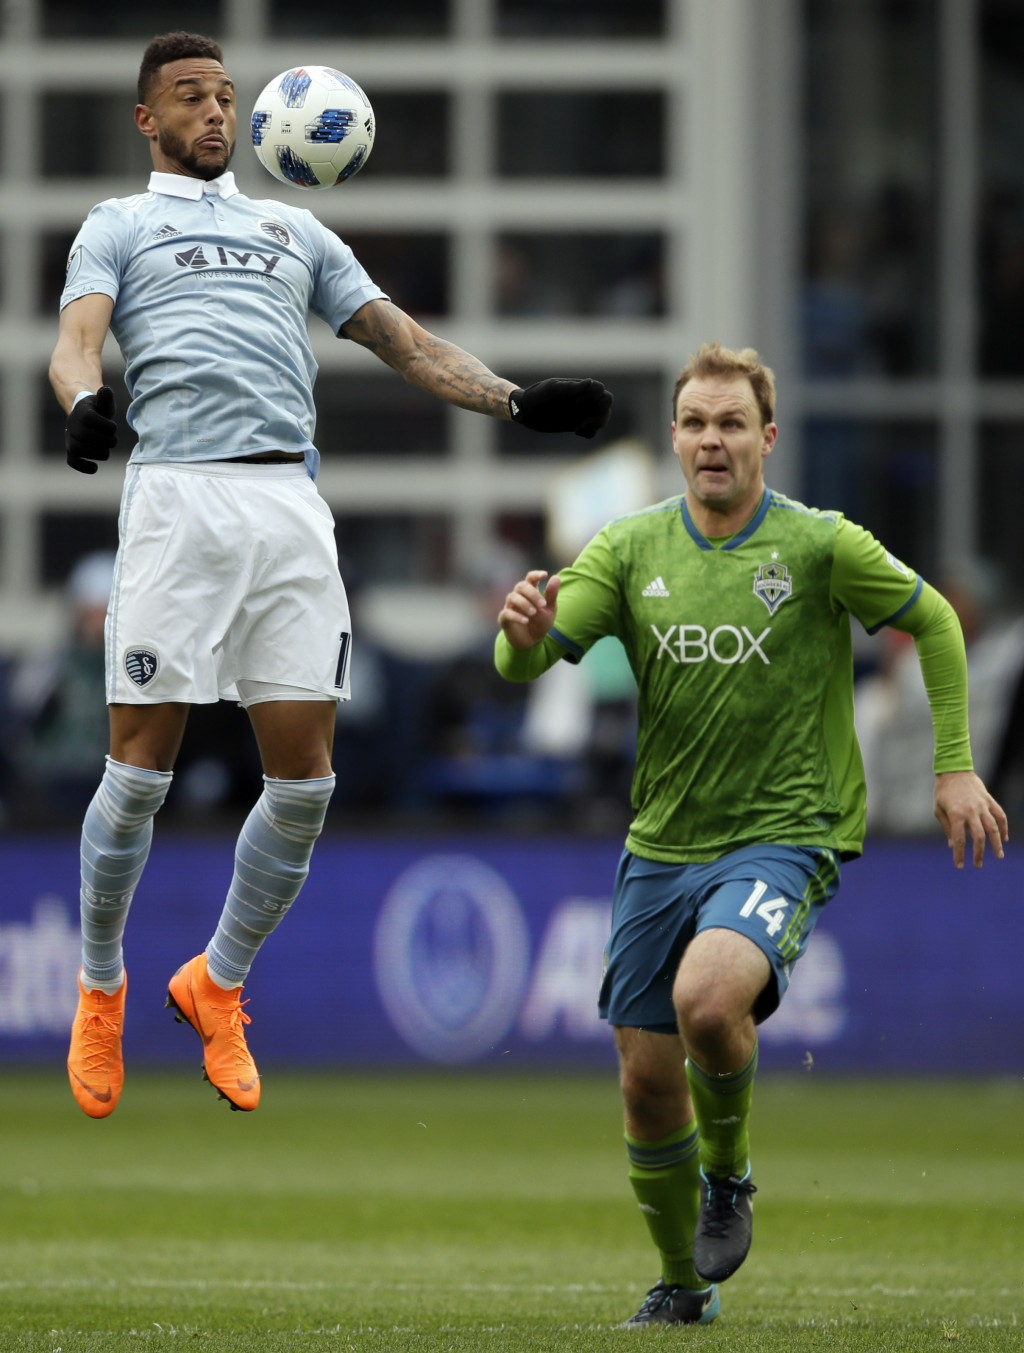 Sporting Kansas City forward Khiry Shelton, left, receives the ball while covered by Seattle Sounders defender Chad Marshall, right, during the first